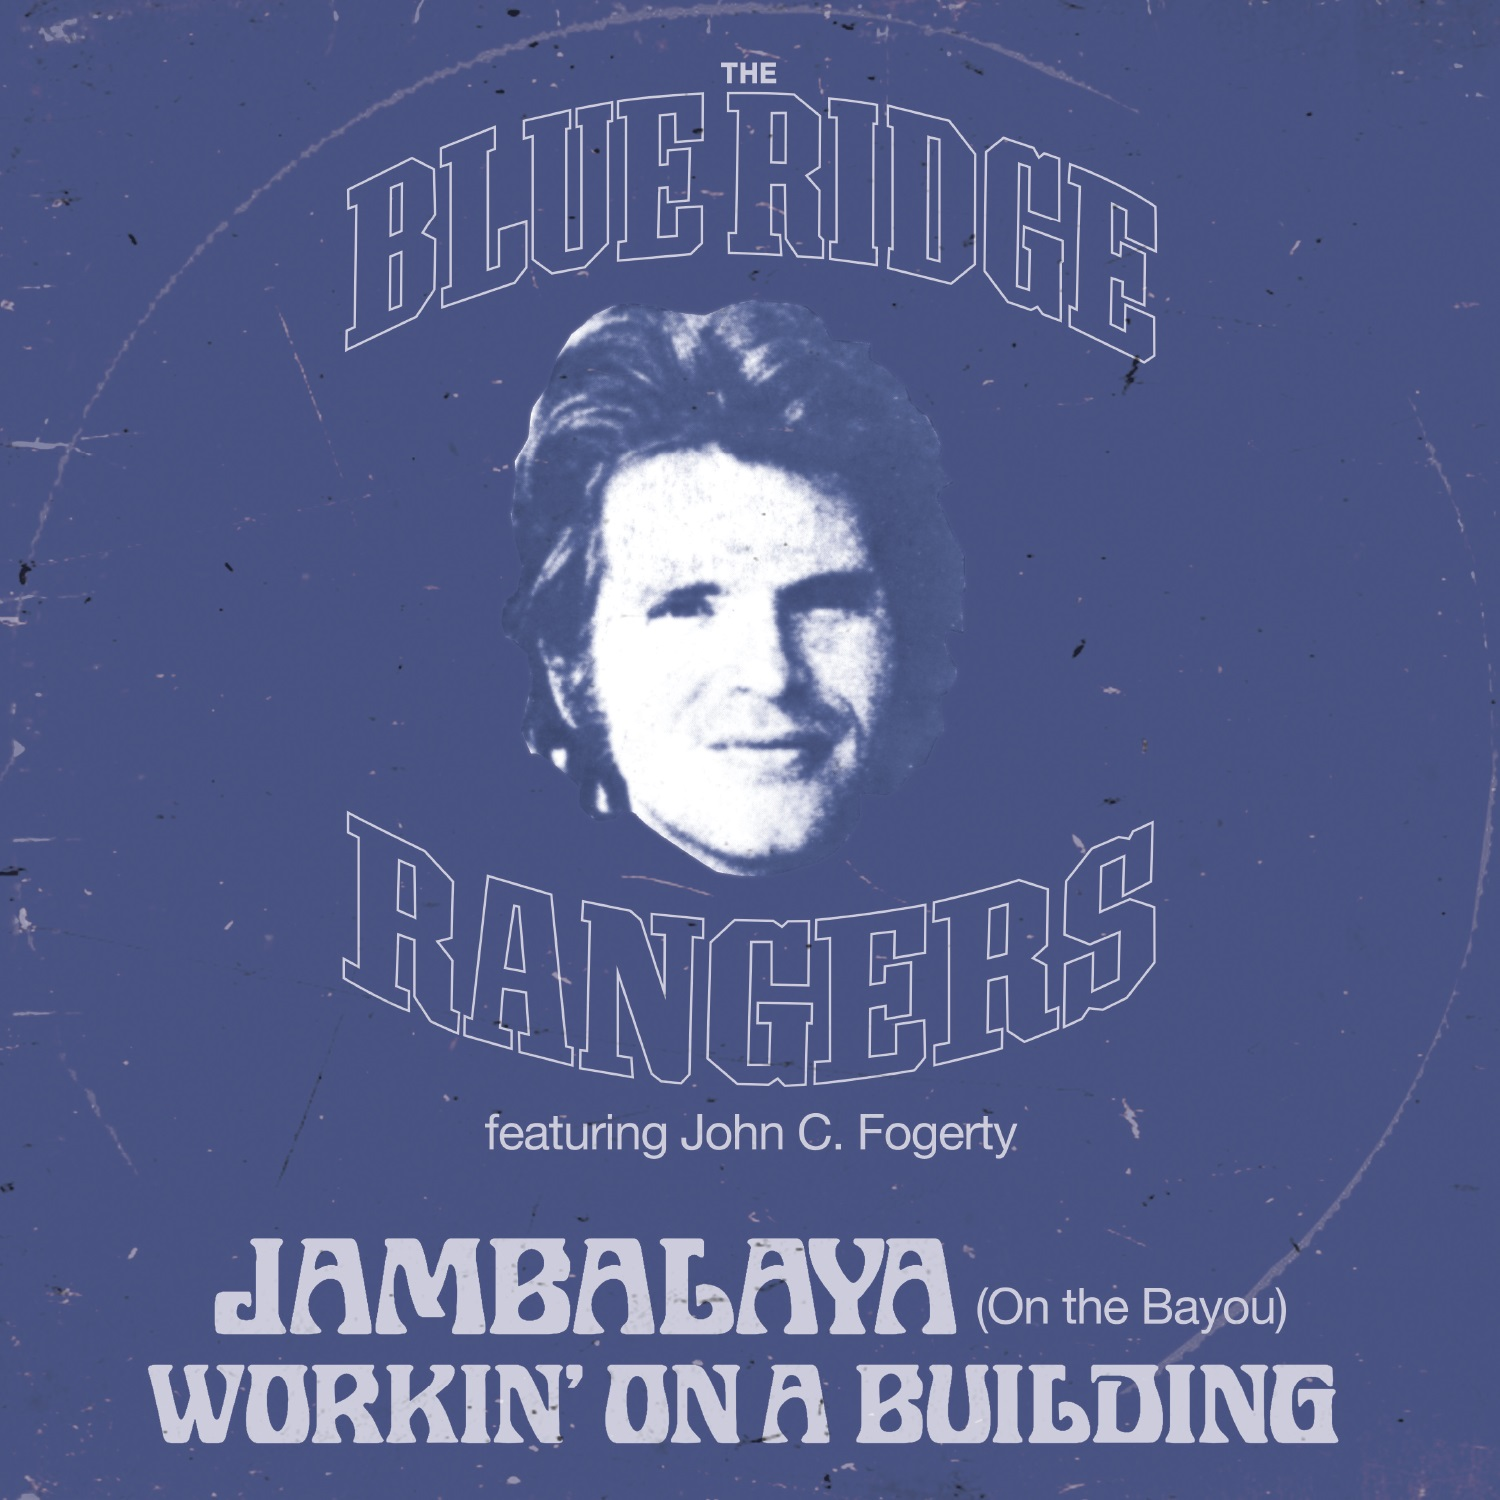 John Fogerty - Blue Ridge Rangers EP [RSD Drops 2021]